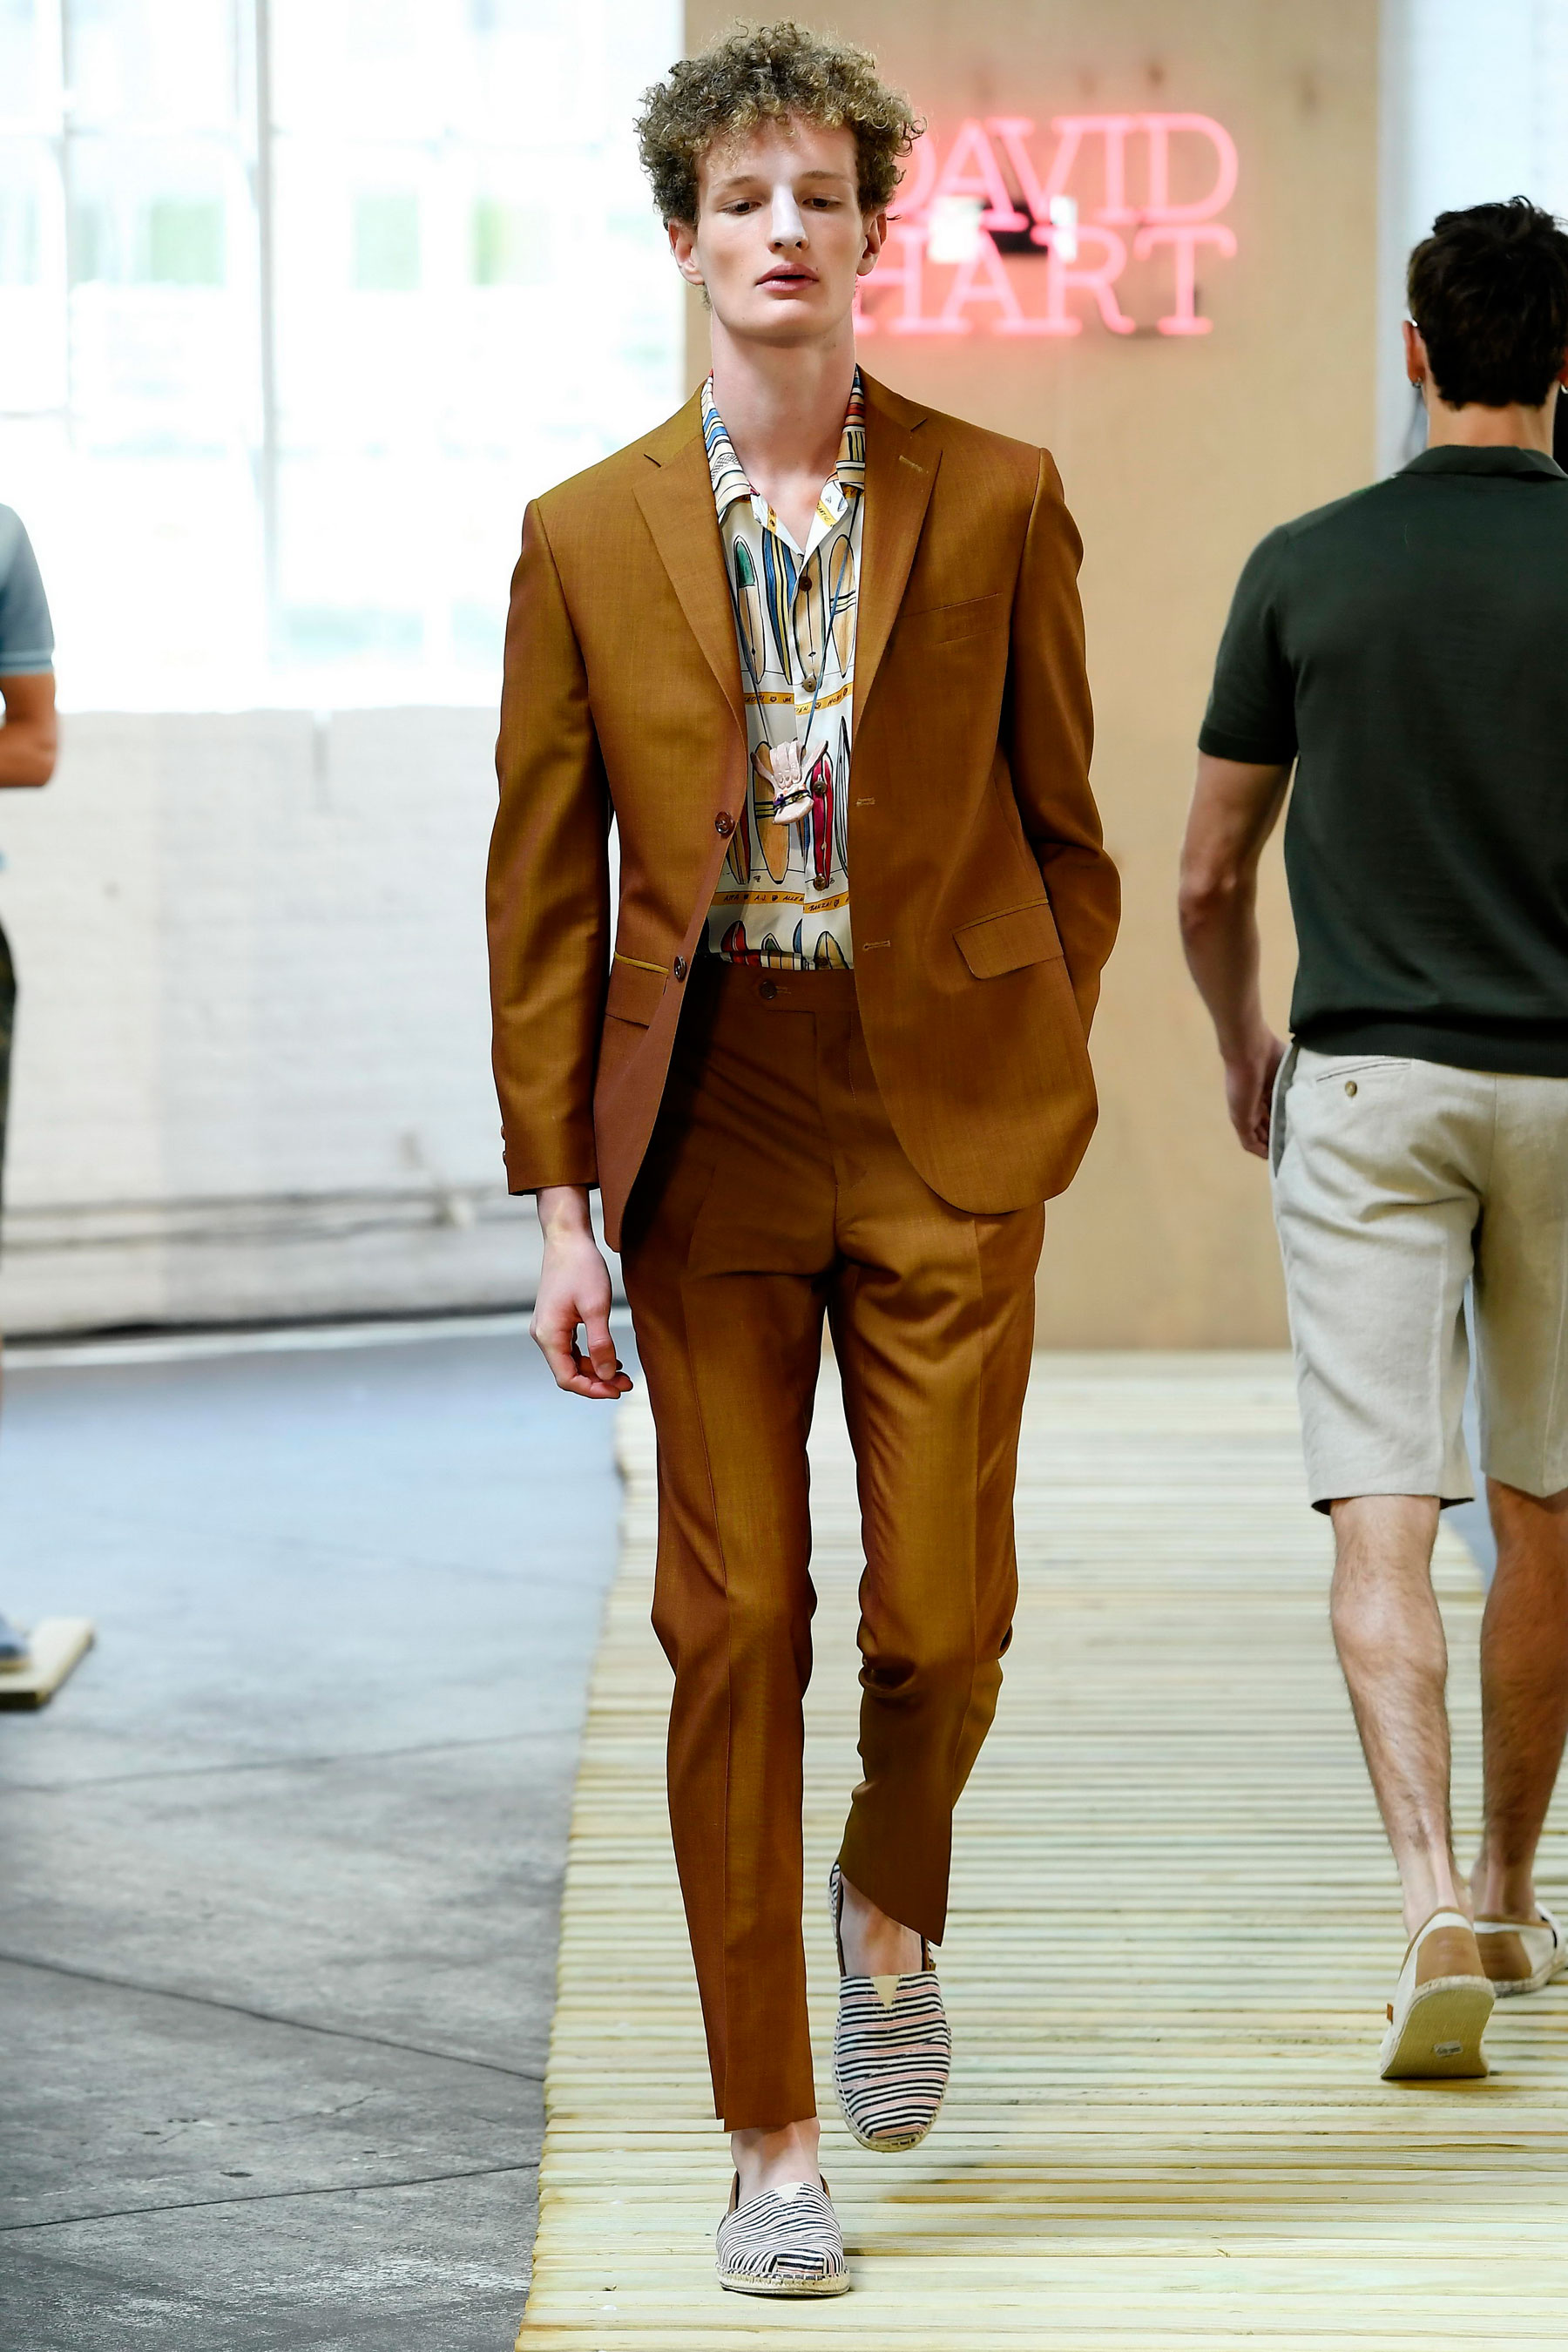 David Hart, New York Menswear, 7/11/2016